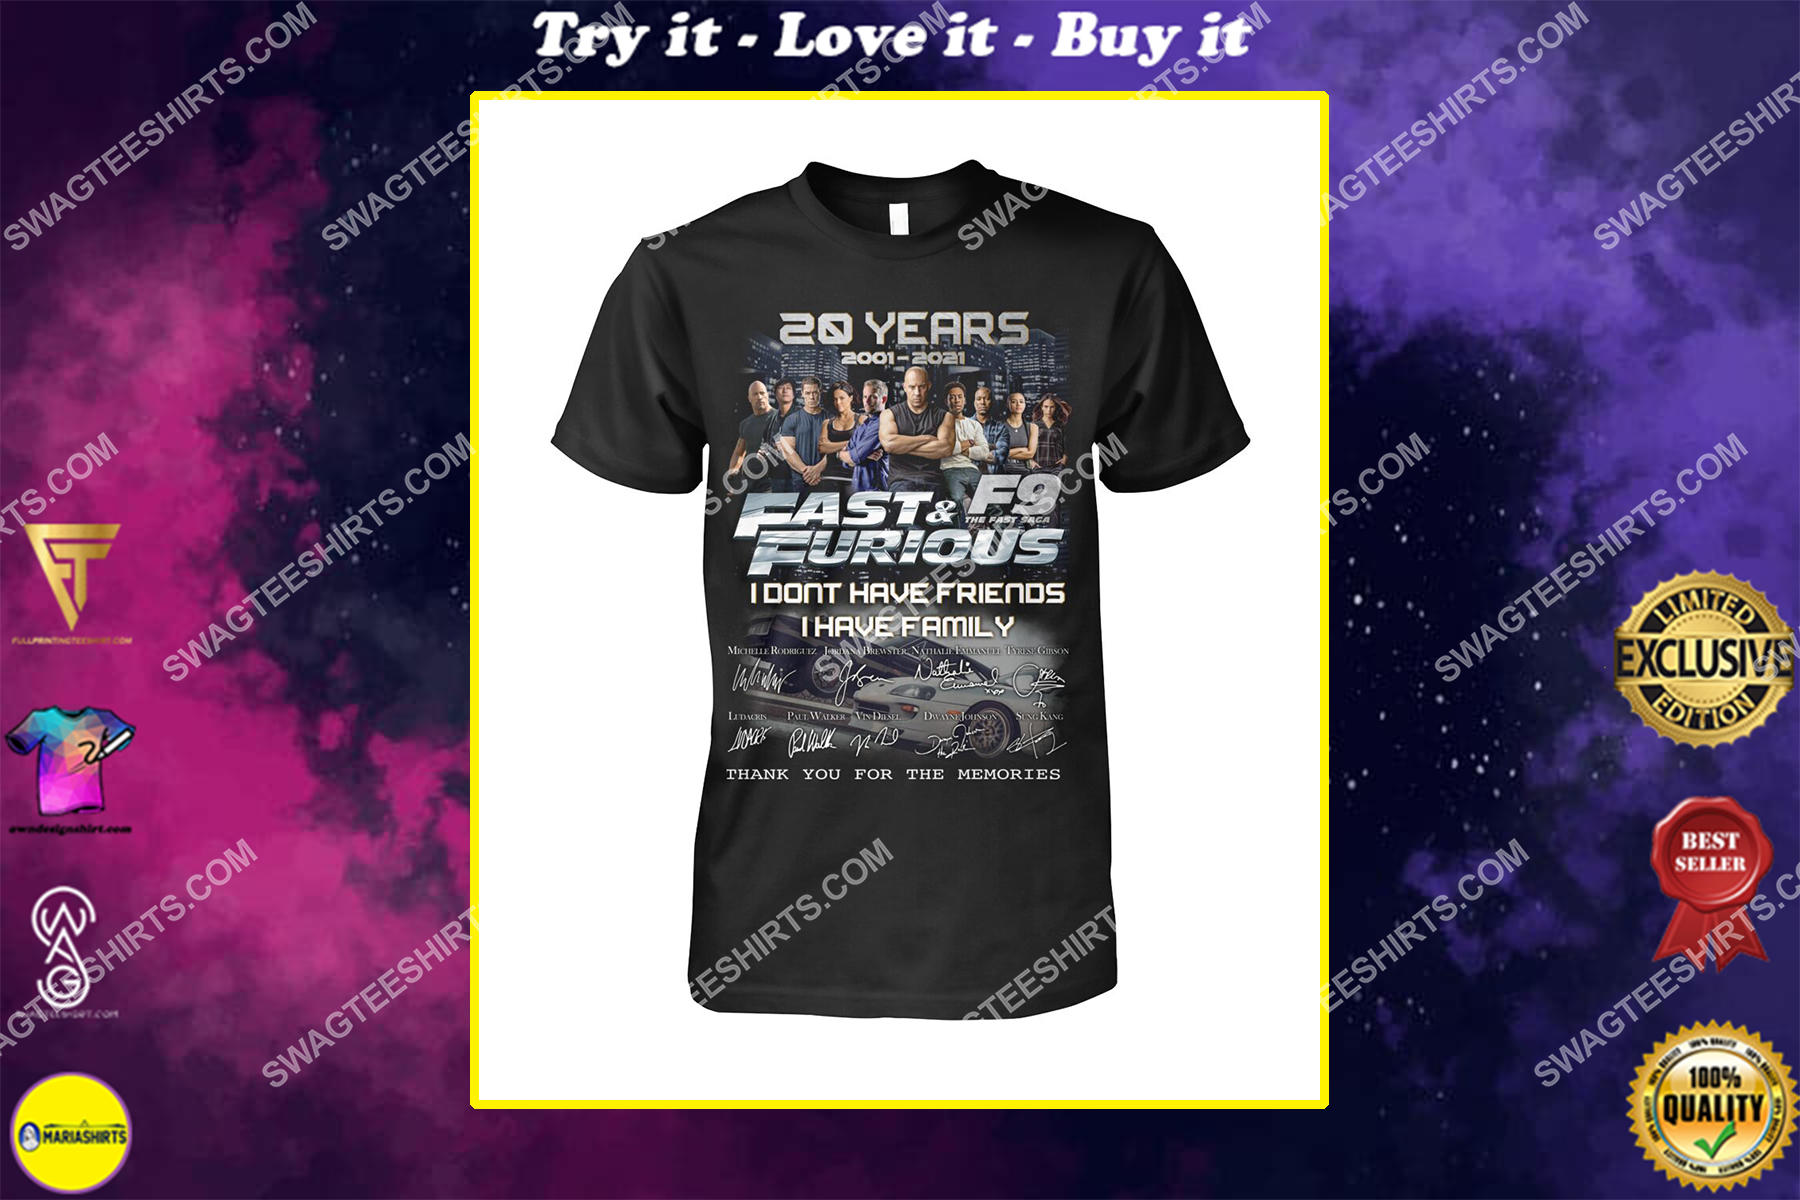 fast and furious 20 years i don't have friends i have family shirt